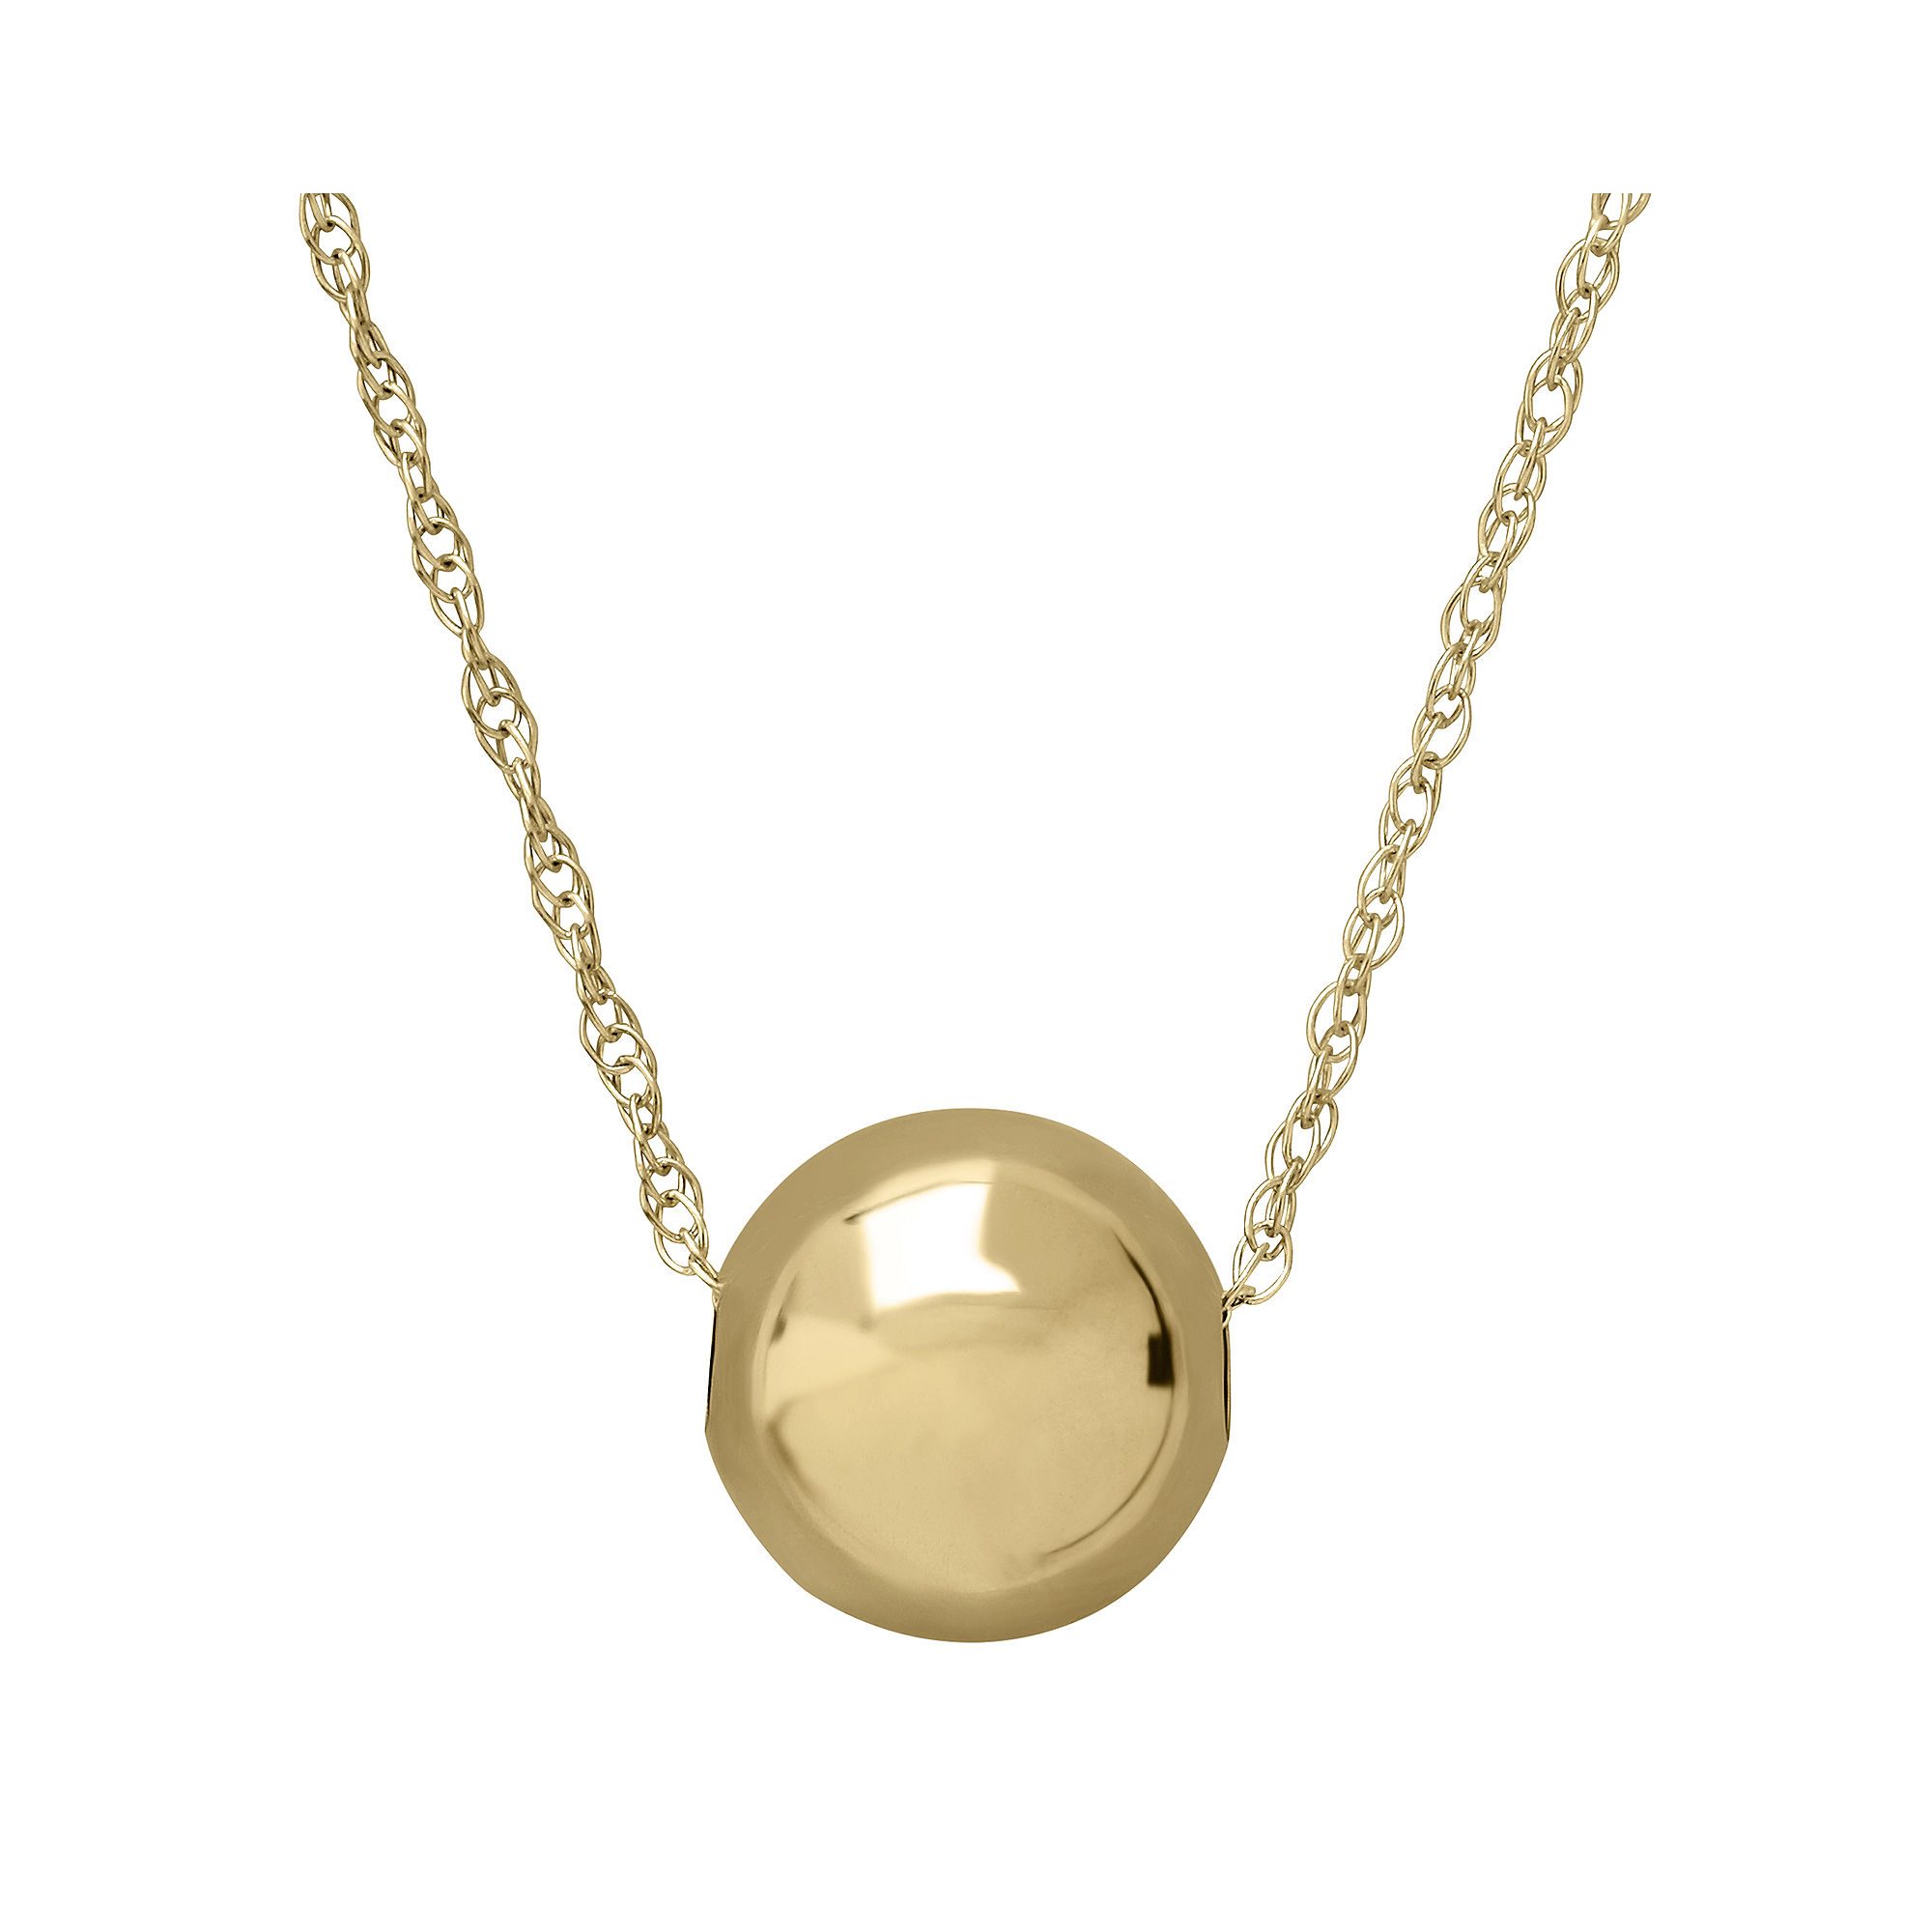 Infinite Gold™ 14K Yellow Gold 8mm Bead Pendant Necklace